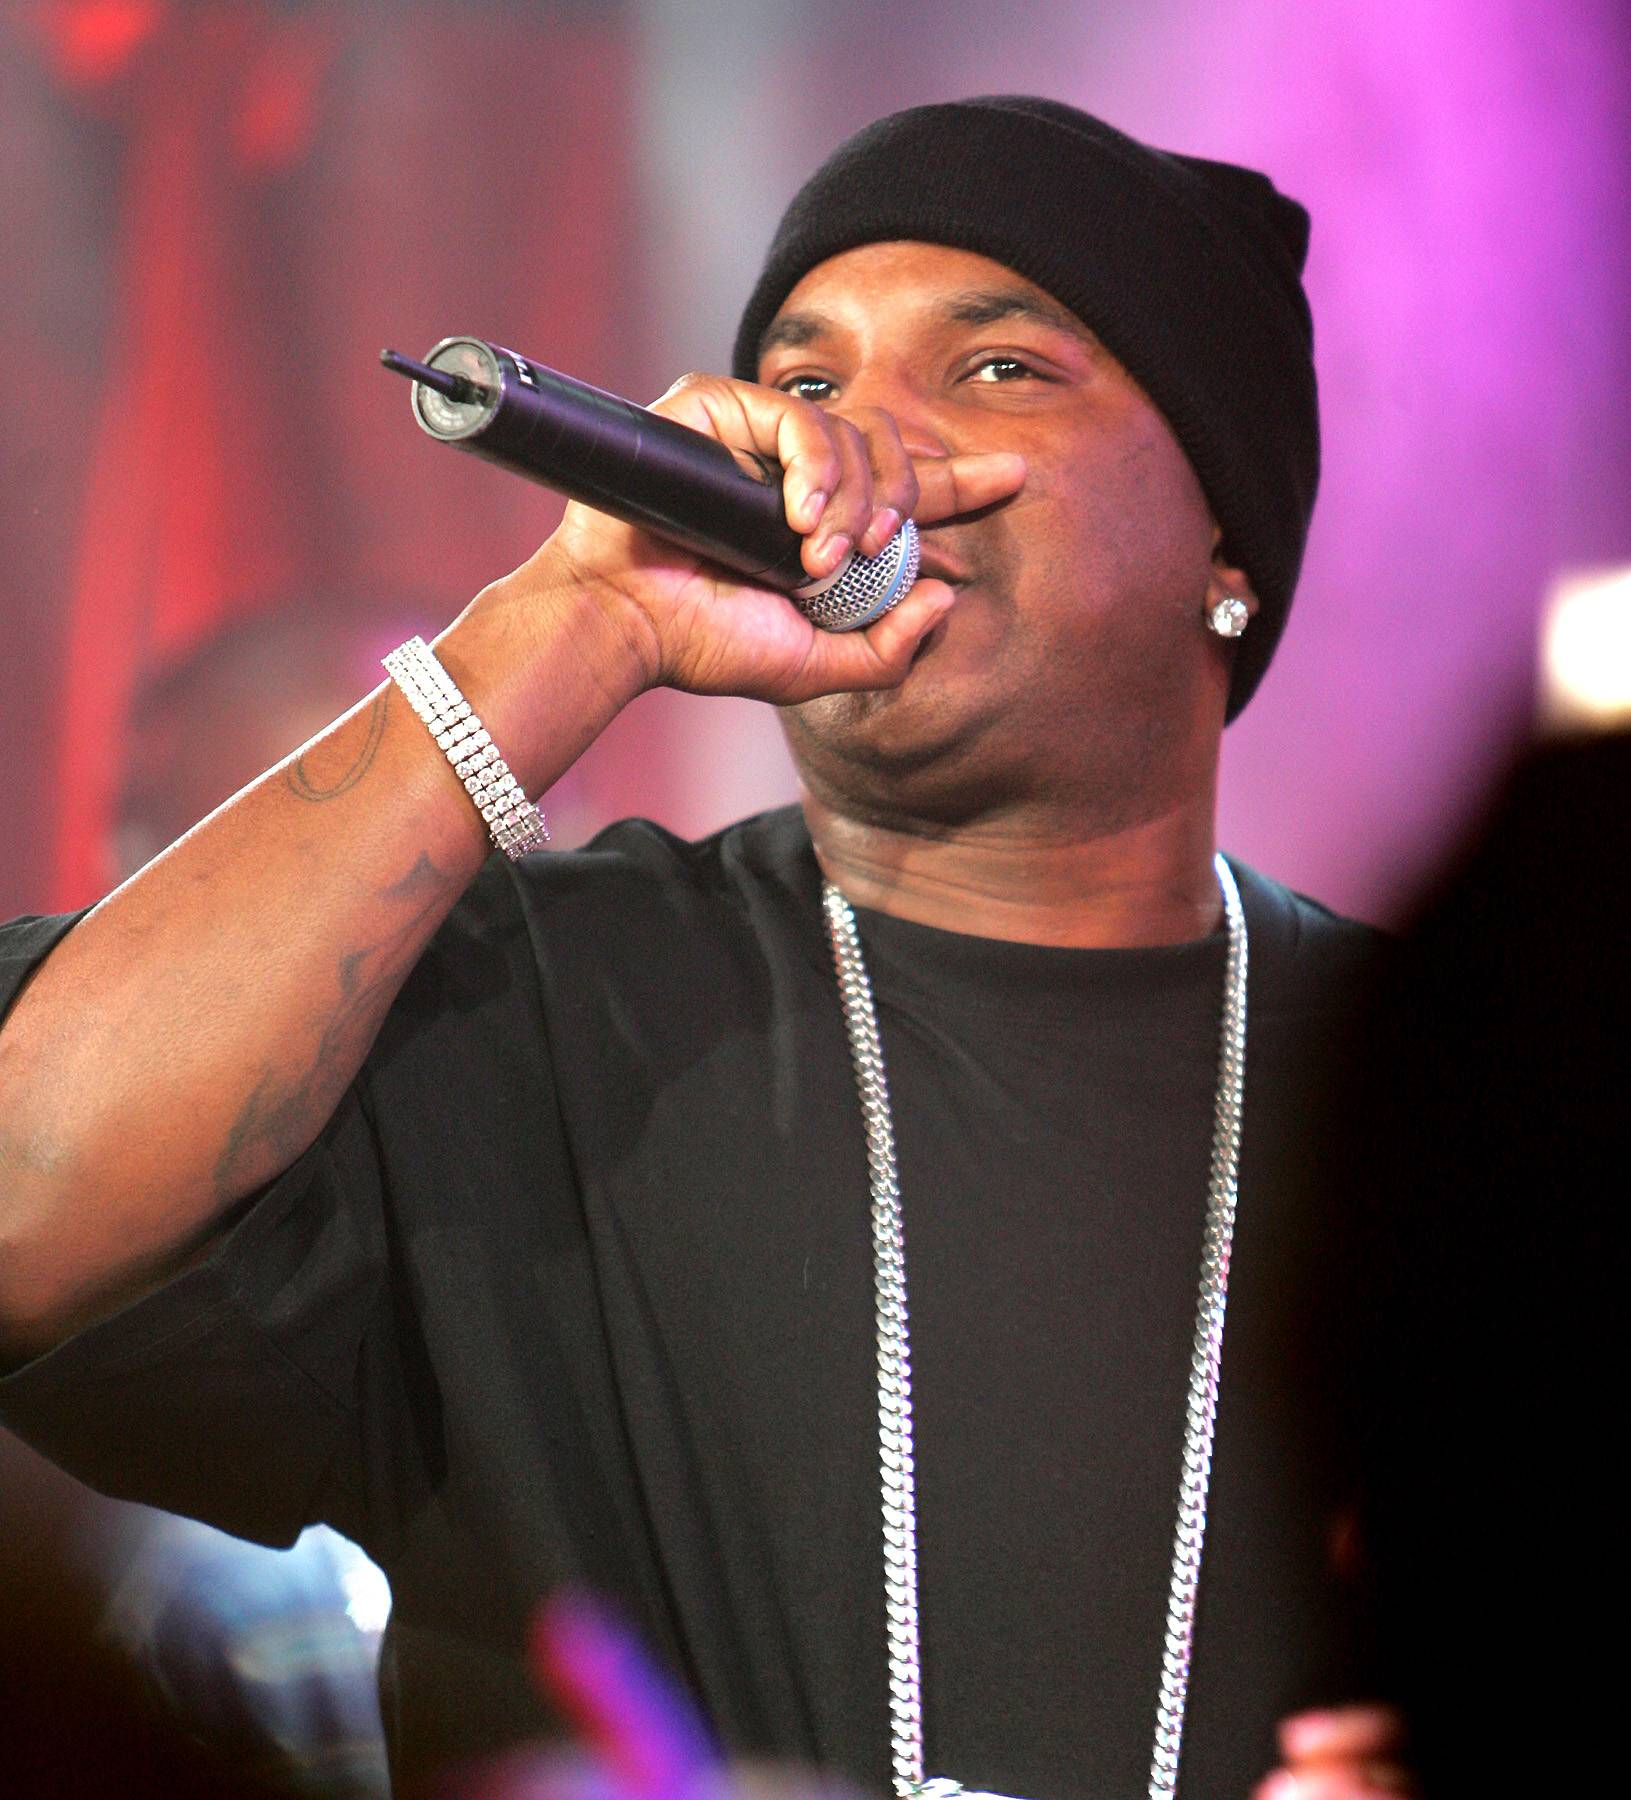 The Streets to the Studio - He got his first taste of the rap game with the 2001 release of Thuggin Under the Influence (T.U.I.), under the name Lil J.T.U.I. featured appearances by Lil Jon, who also produced many of the tracks.(Photo: Paul Hawthorne/Getty Images)